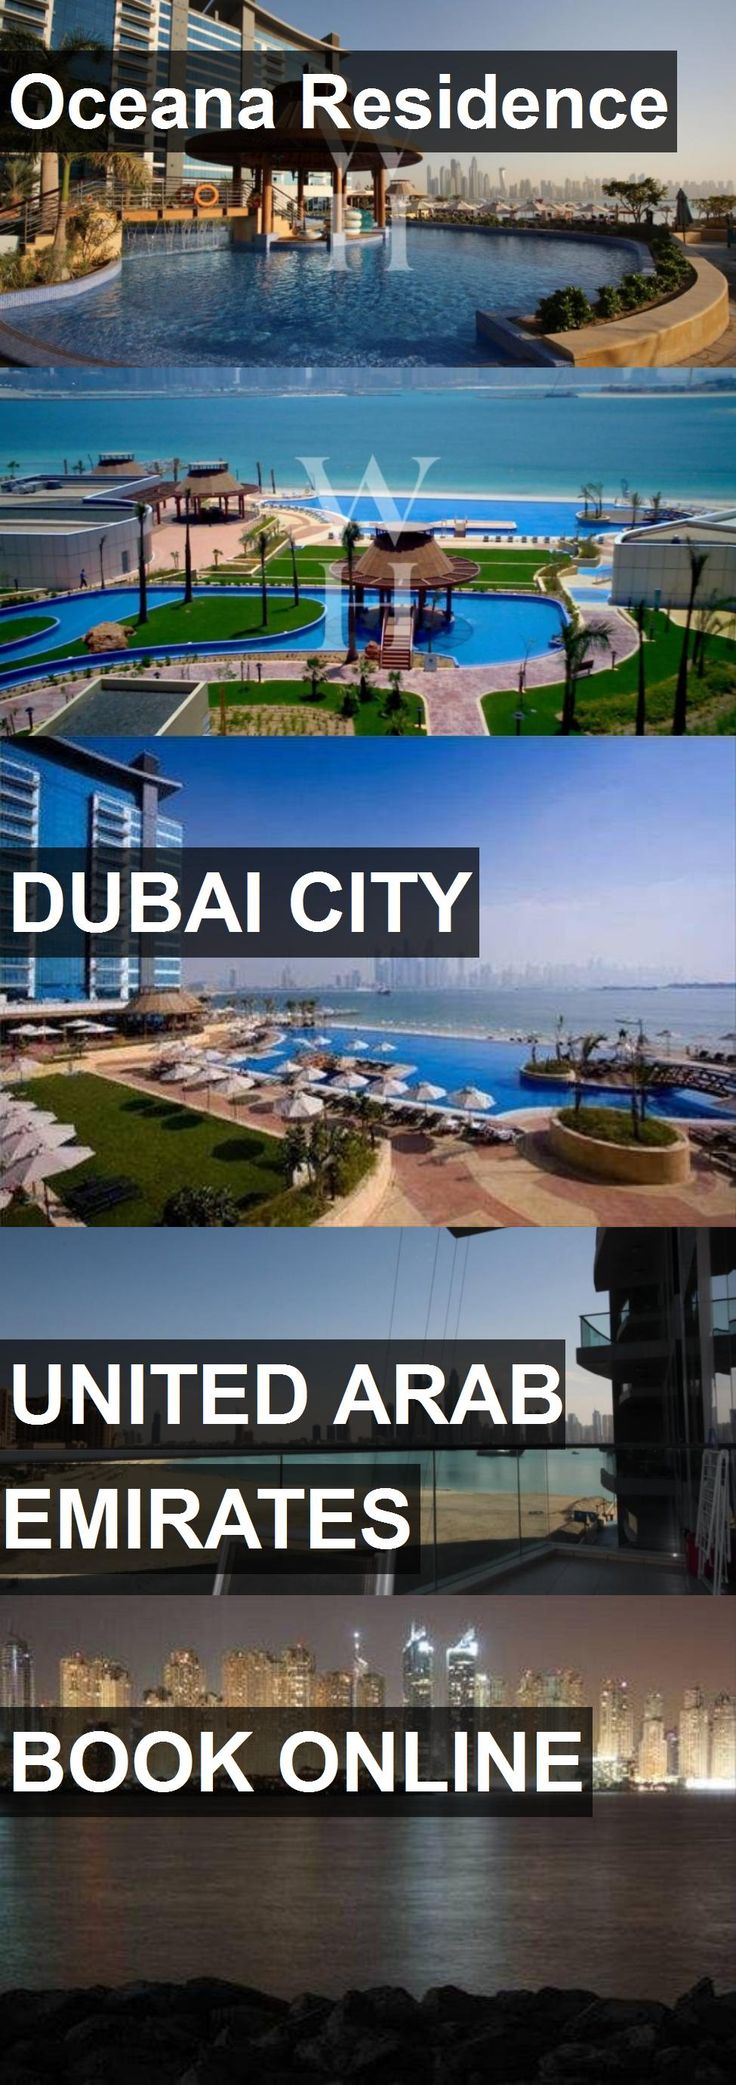 Hotel Oceana Residence in Dubai City, United Arab Emirates. For more information, photos, reviews and best prices please follow the link. #UnitedArabEmirates #DubaiCity #hotel #travel #vacation